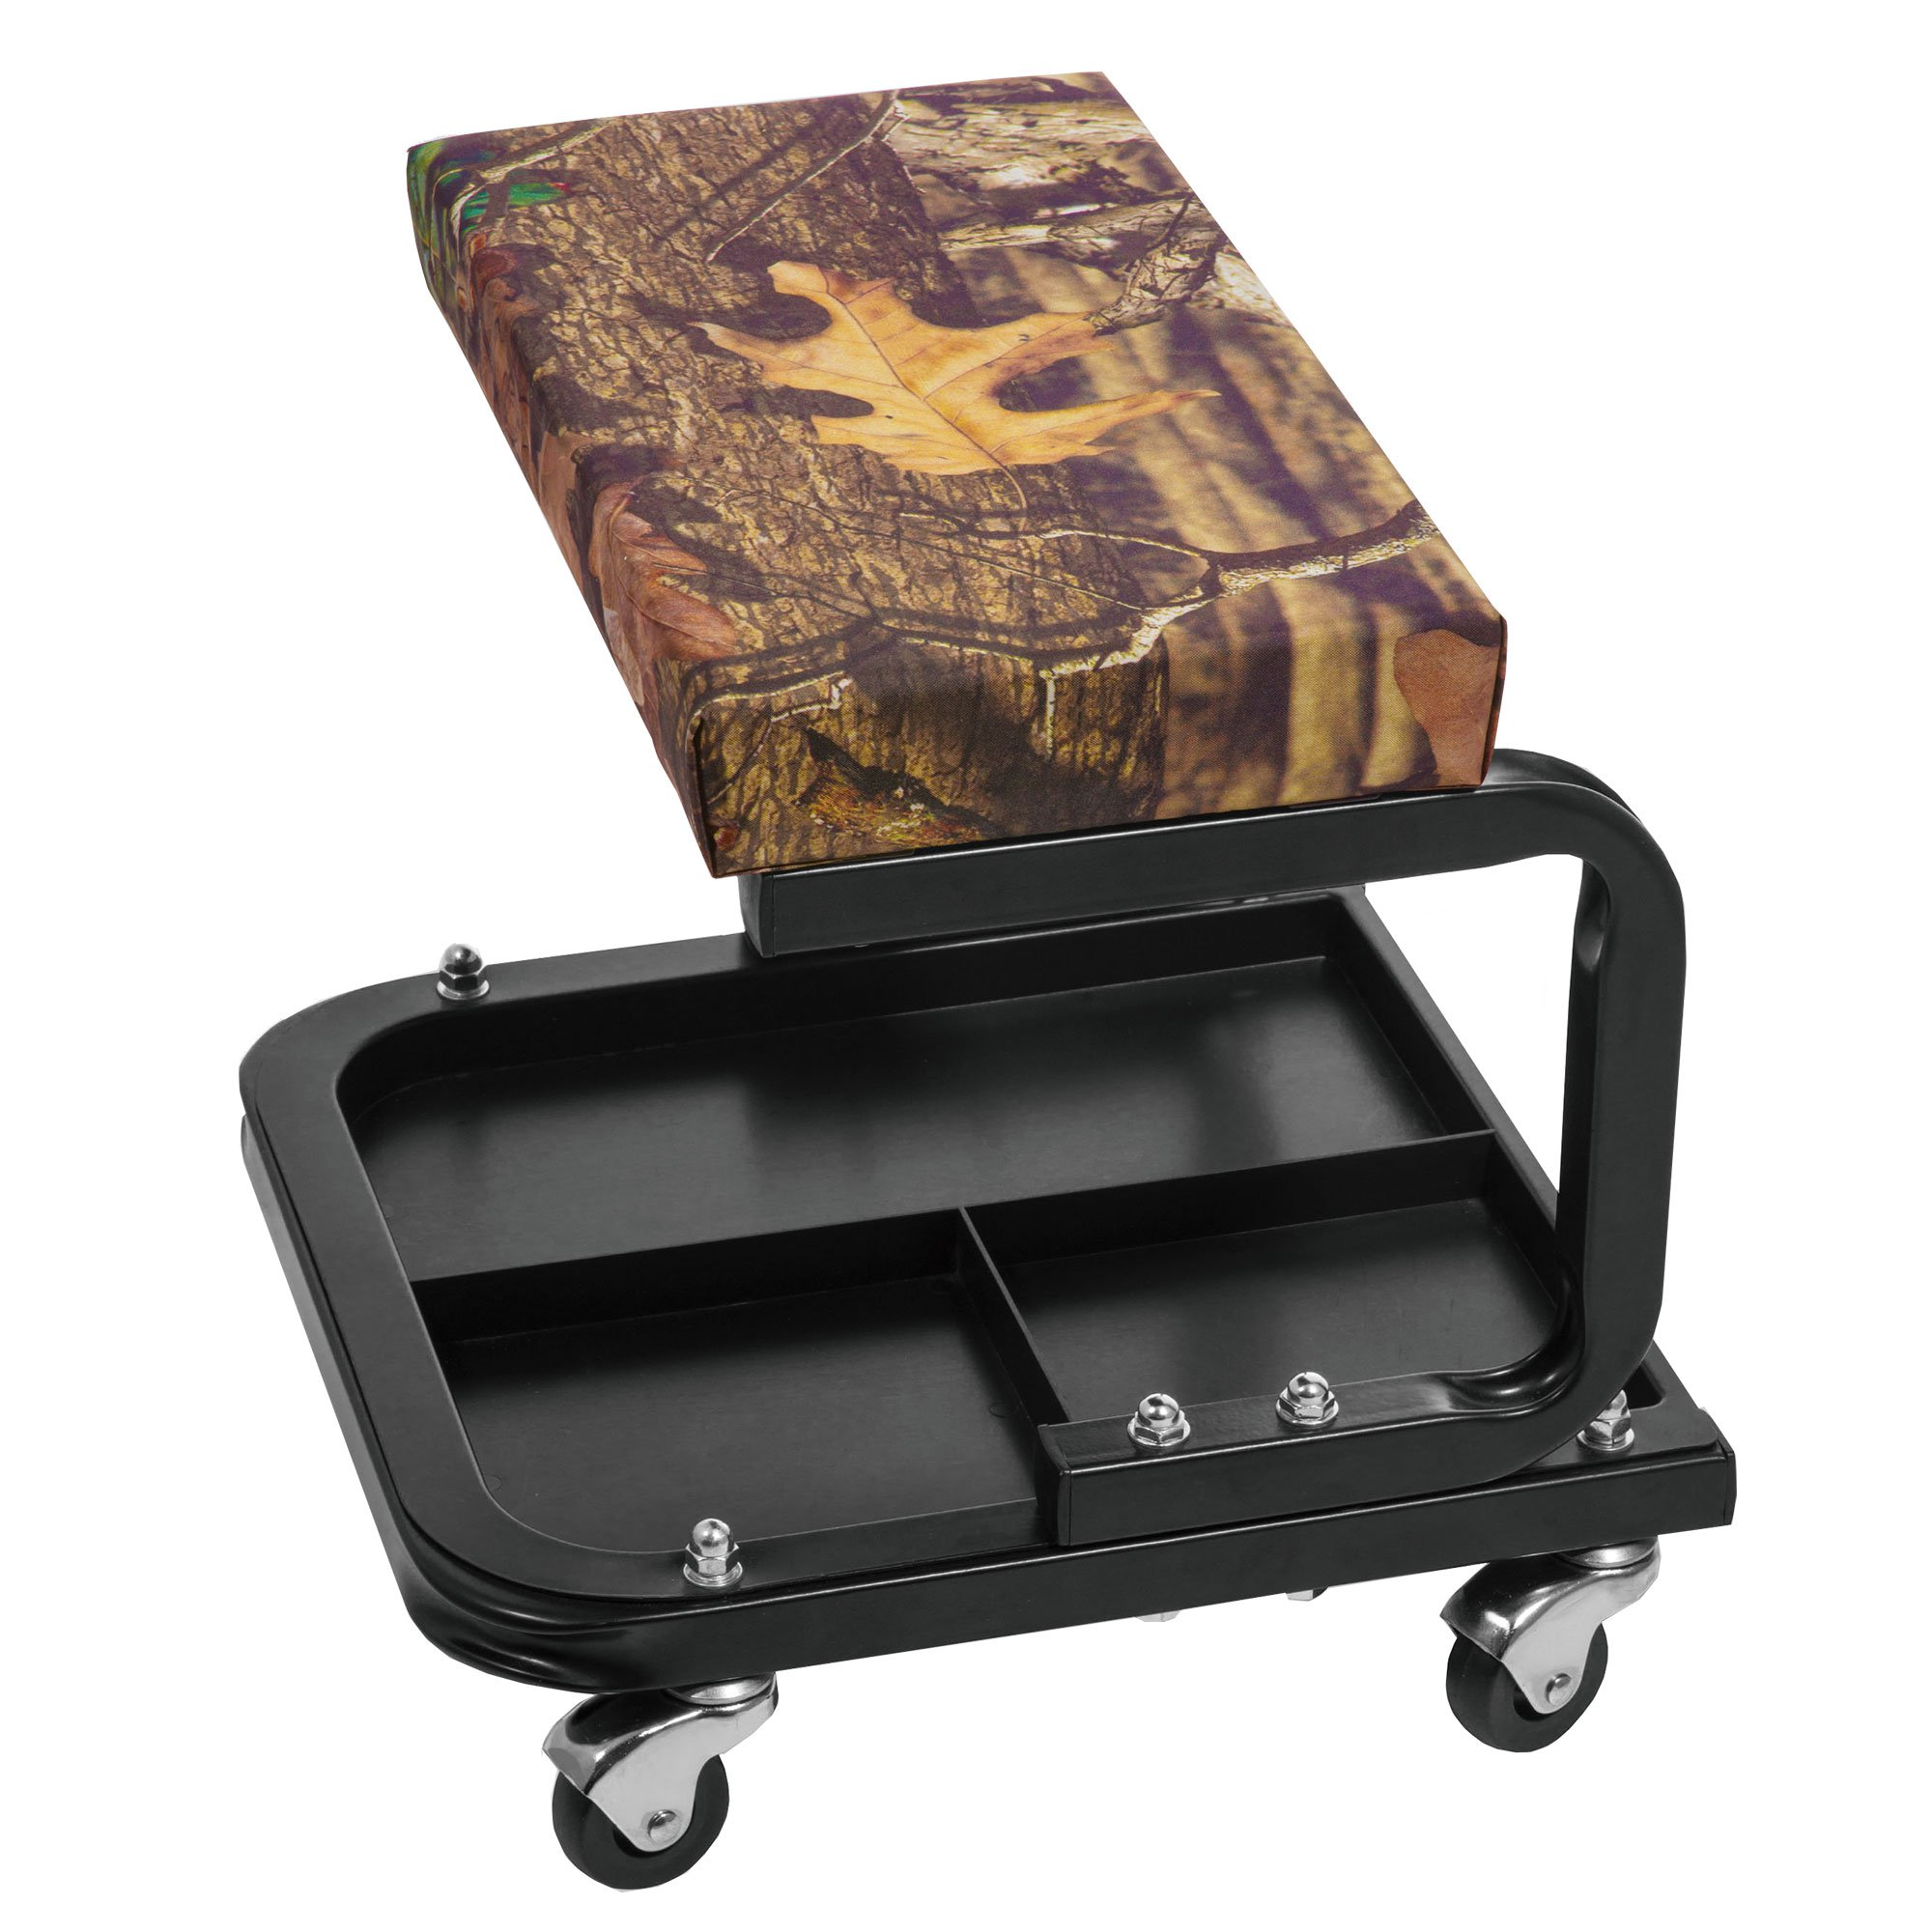 Torin Mossy Oak Rolling Pneumatic Creeper Garage Shop Mechanic Padded Seat Stool